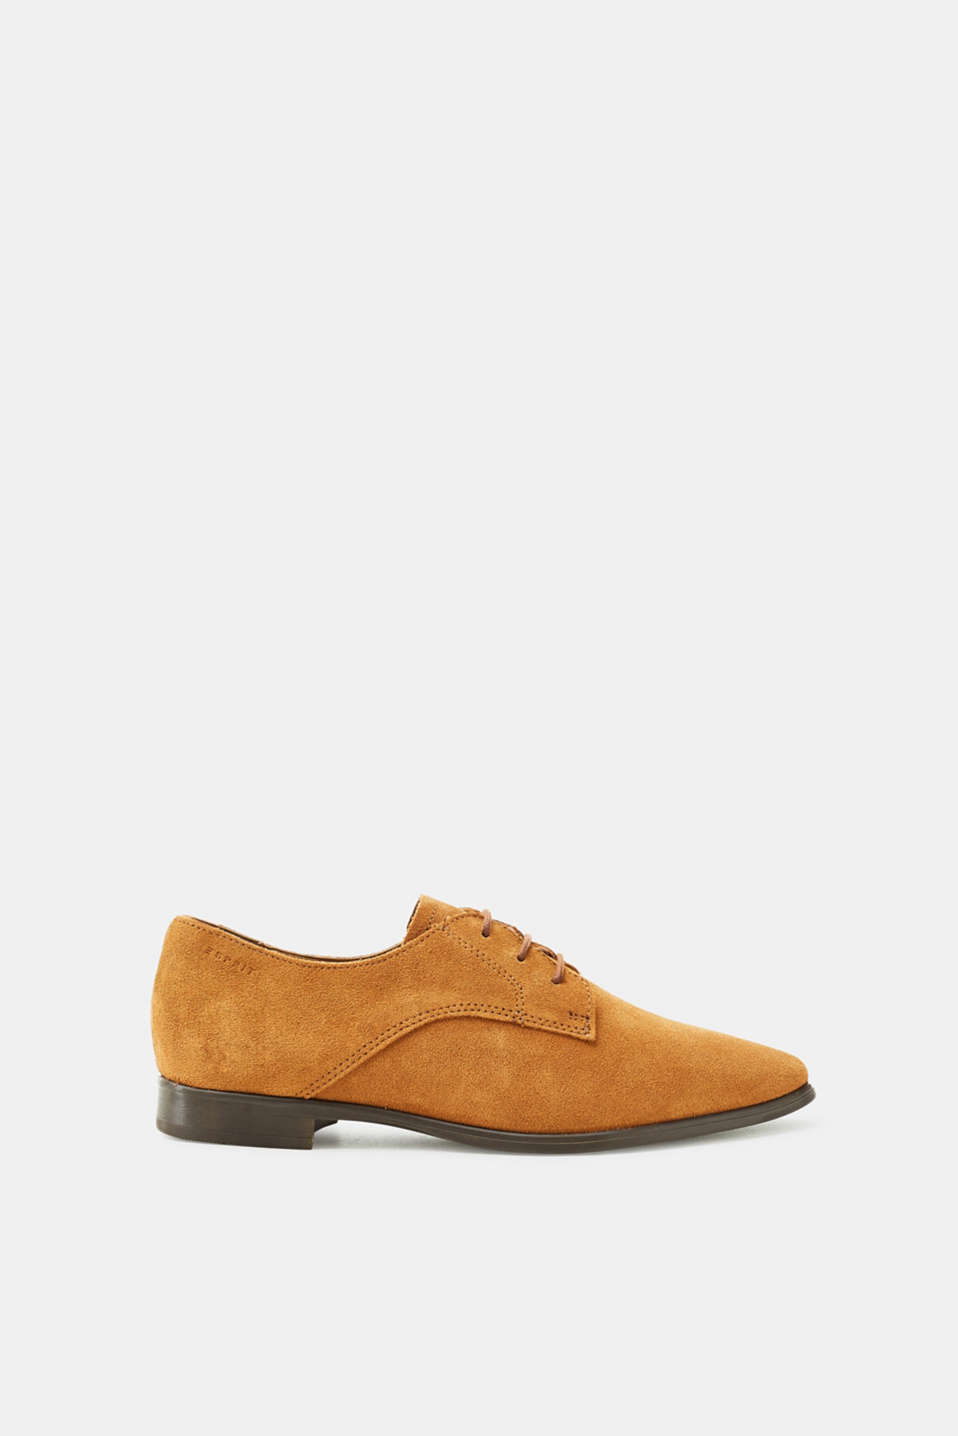 Esprit - Lace-up shoe made of suede